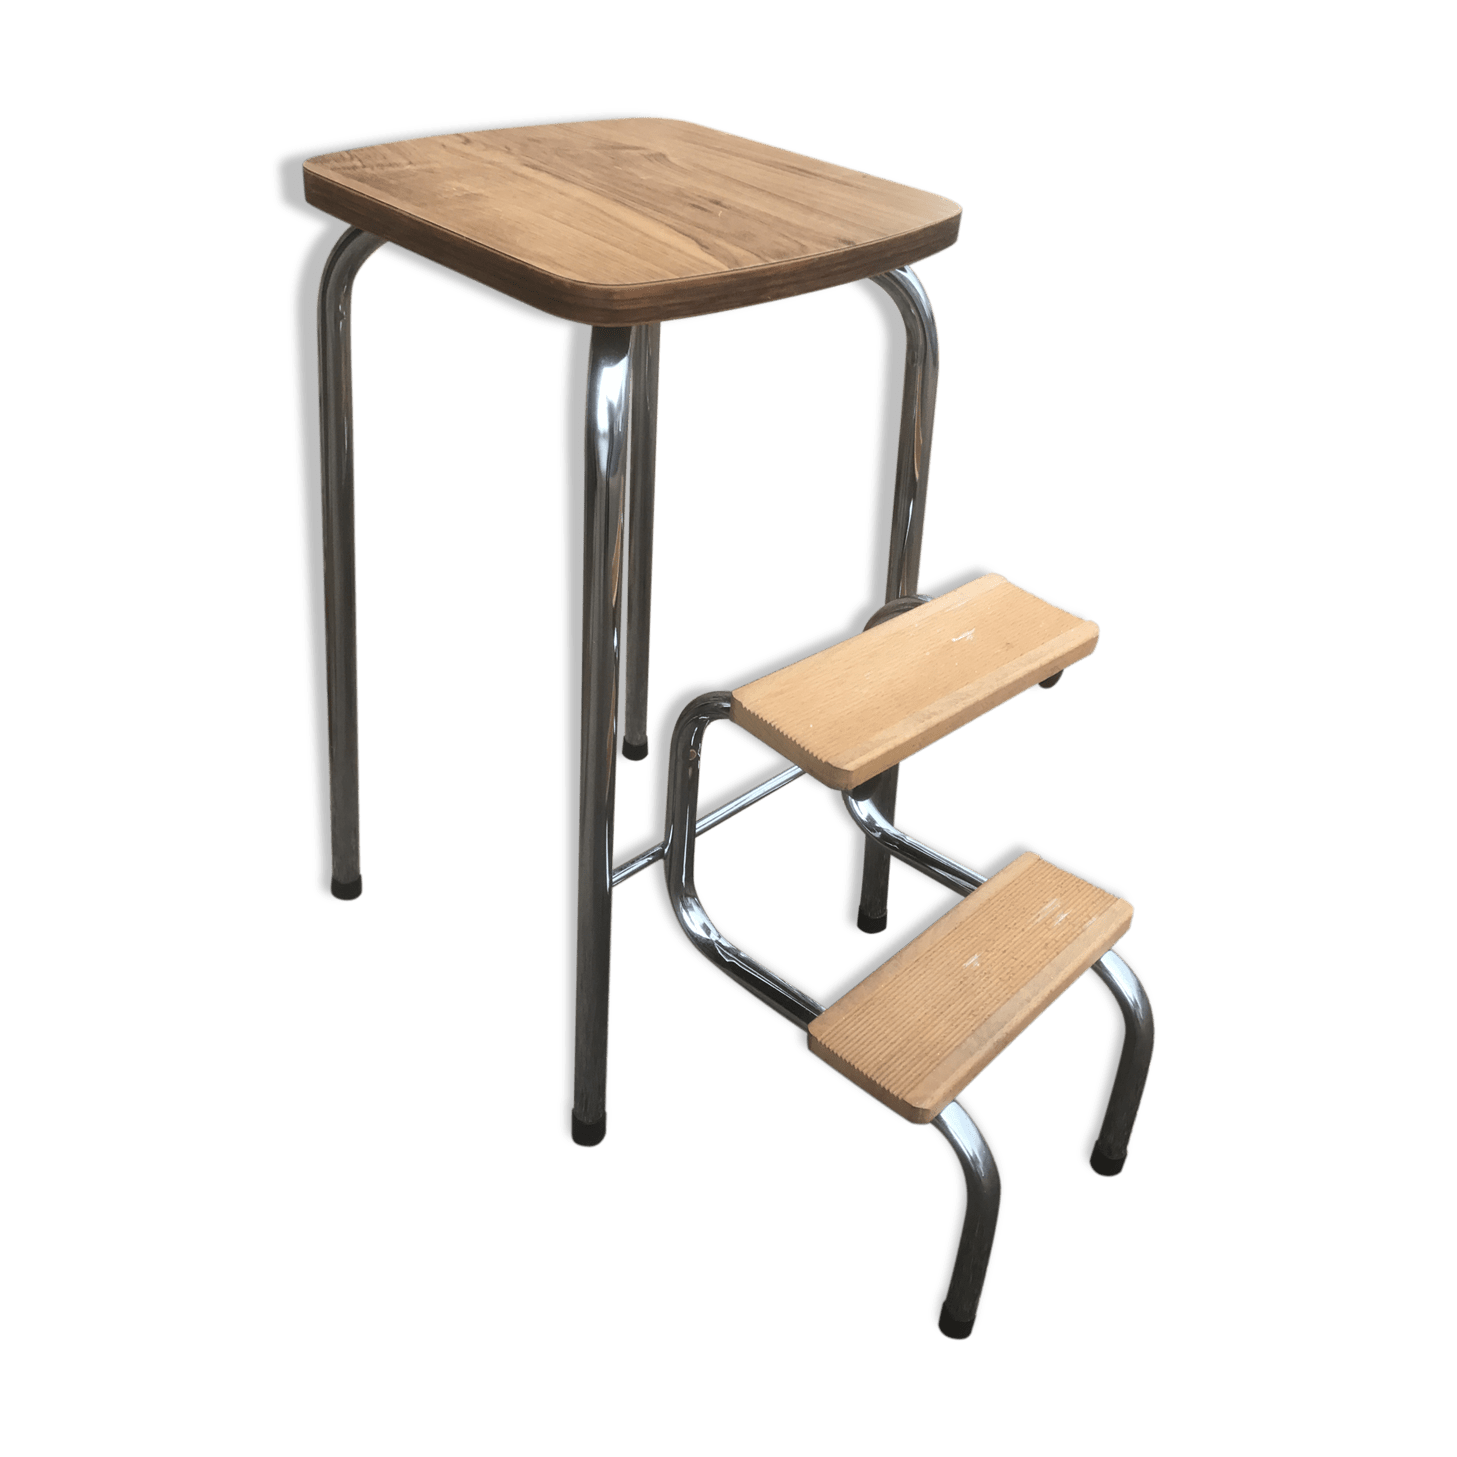 Escabeau 3 Marches Pliable Escabeau 3 Marches Bois Vicris Vicris Tabouret Escabeau